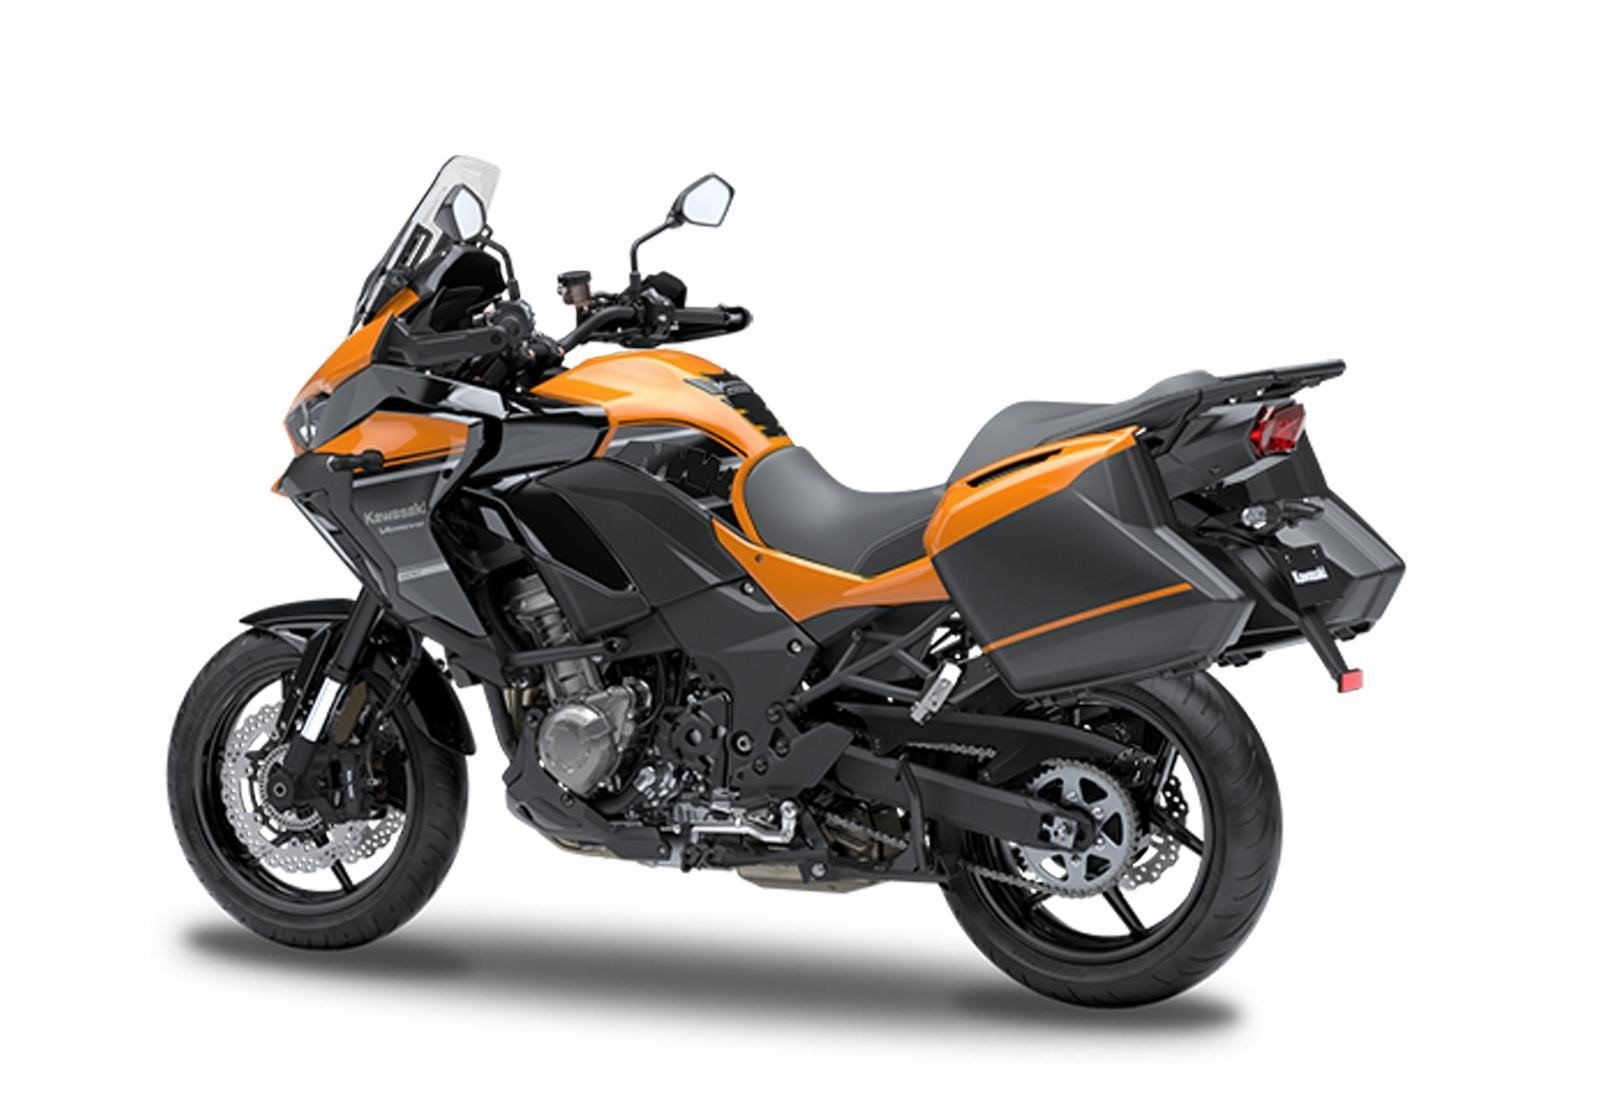 New 2019 Kawasaki Versys 1000 ABS** FREE Tourer UPGRADE** For Sale (picture 2 of 6)